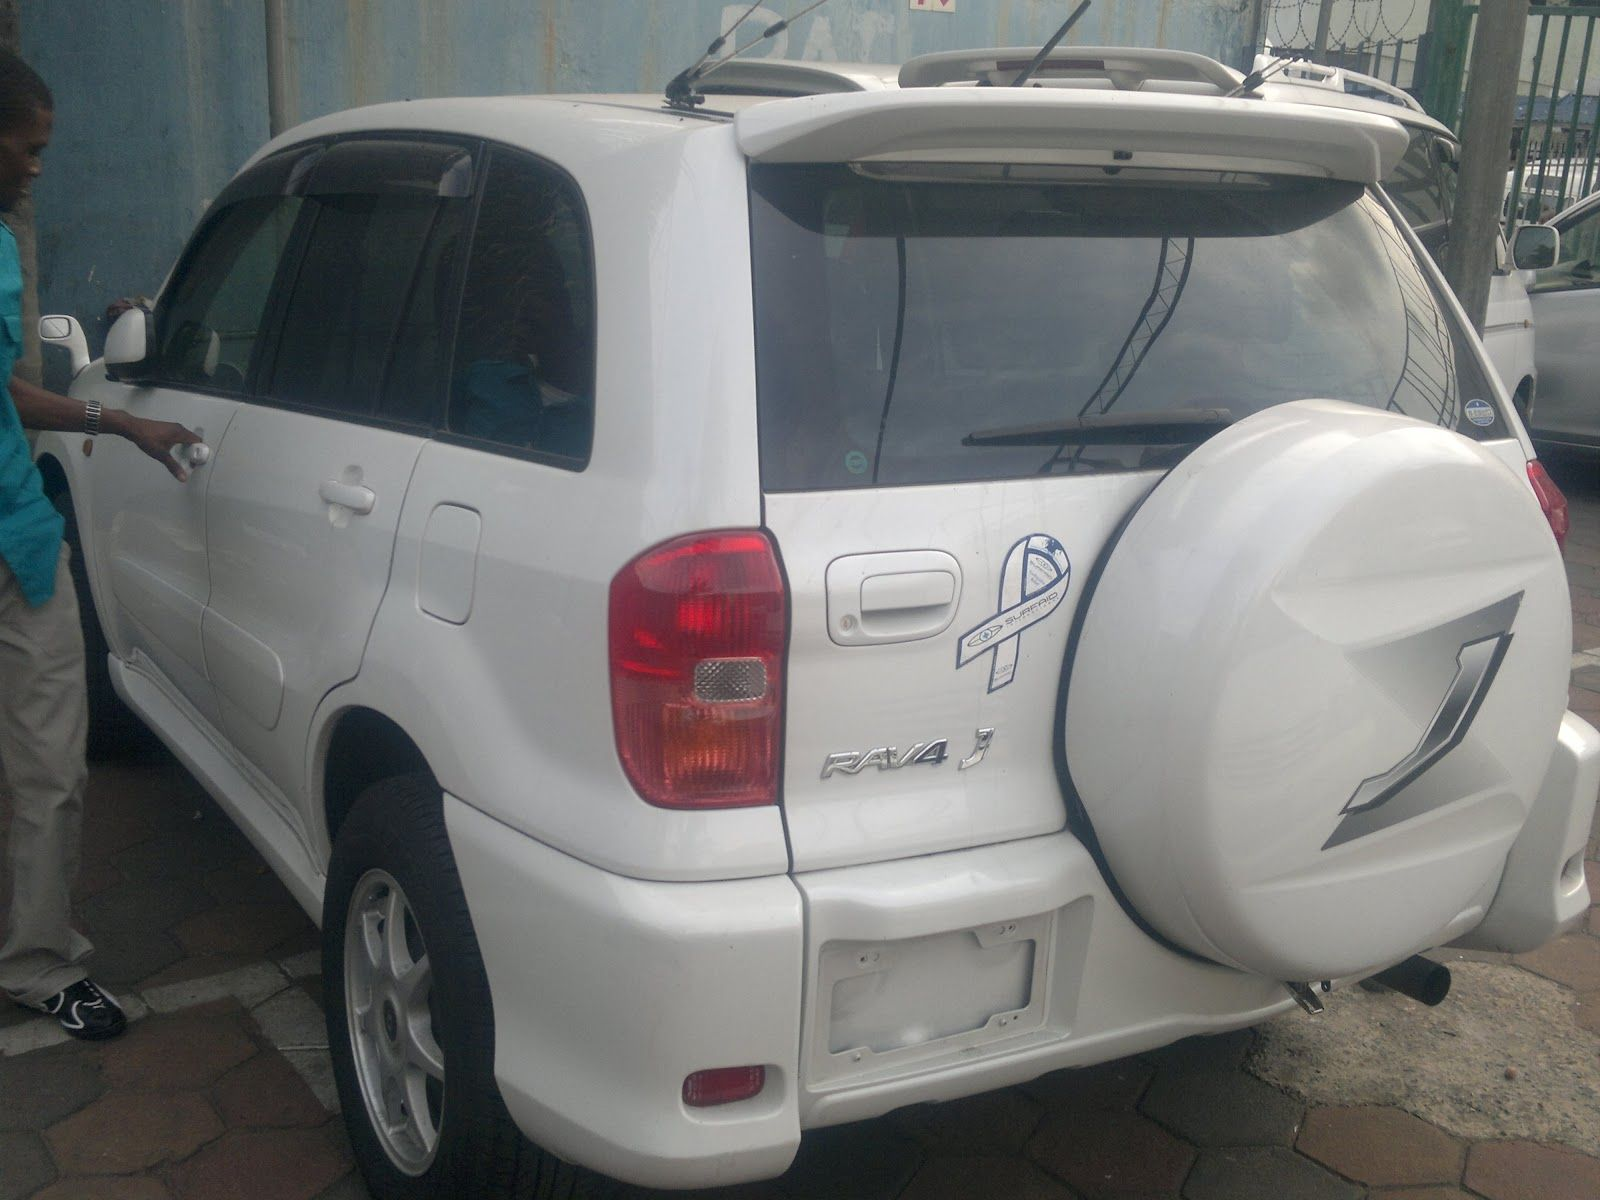 Cars For Sale At Durban Fresh Affordable Used Japanese Cars Trucks And Mini Buses In 2nd Hand Cars Cheap Used Cars Used Cars Near Me